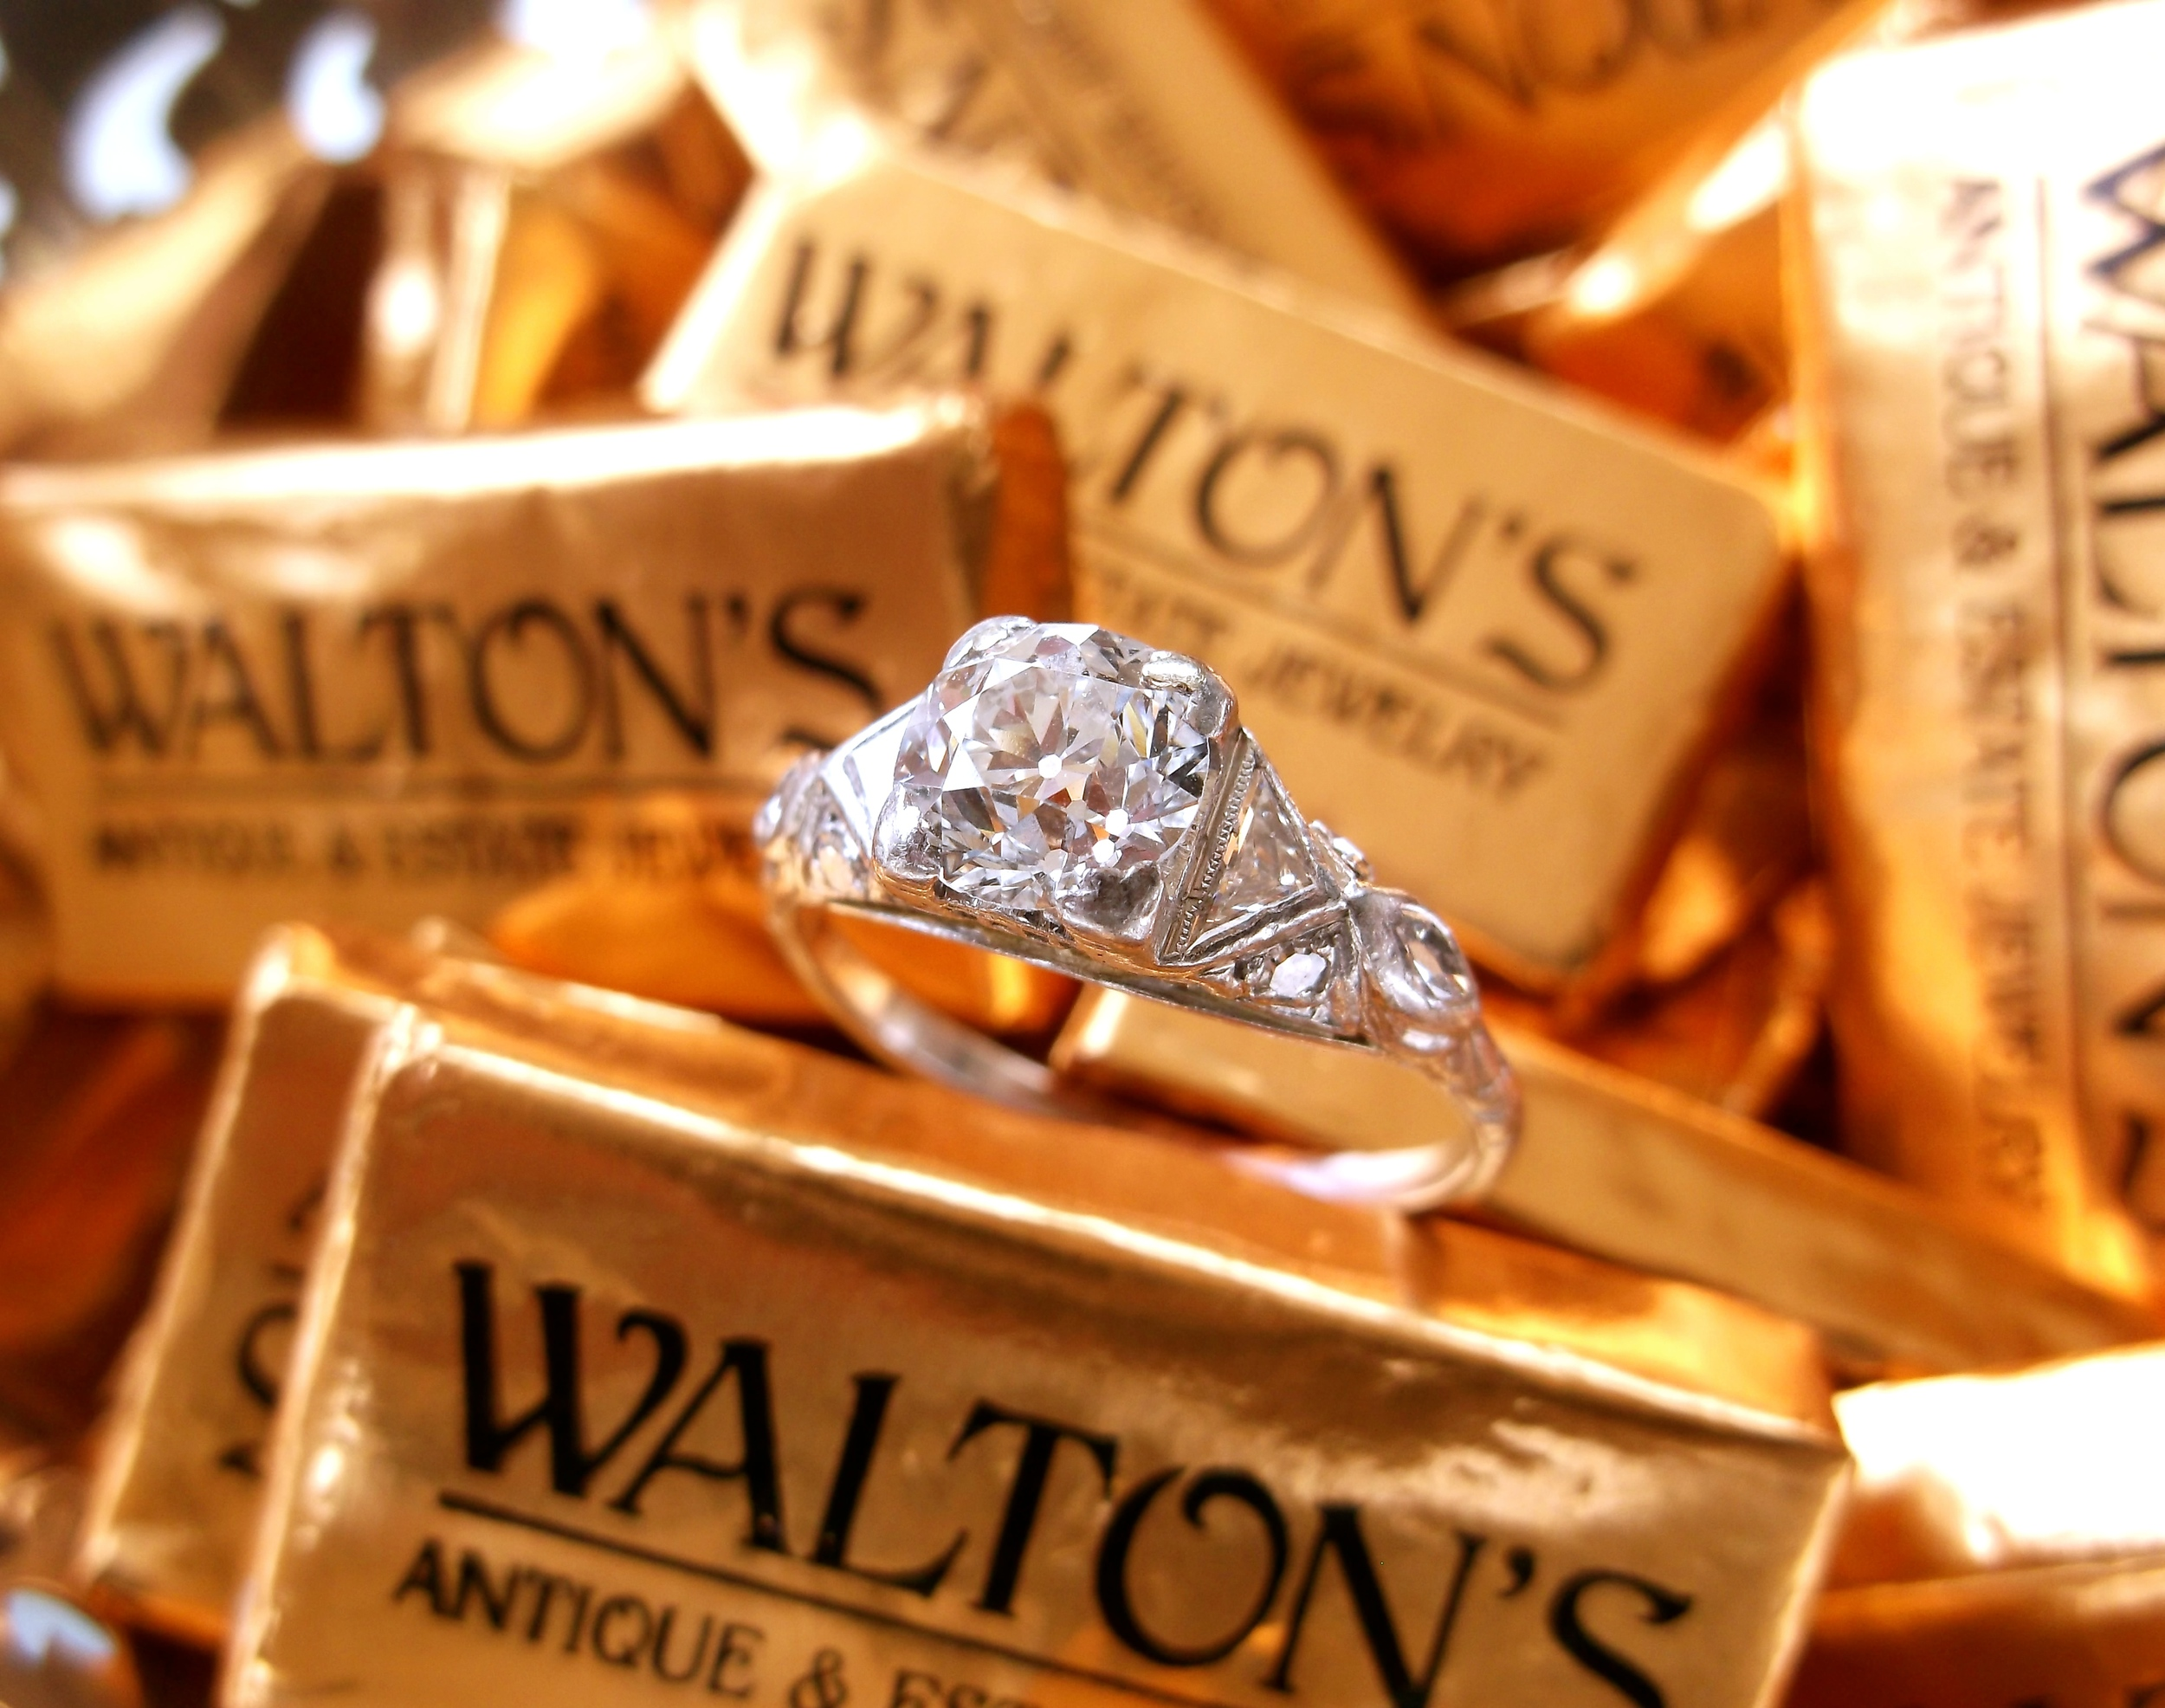 SOLD - Lovely 1920's 1.00 carat Old European cut diamond set in a gorgeous platinum and diamond mounting.